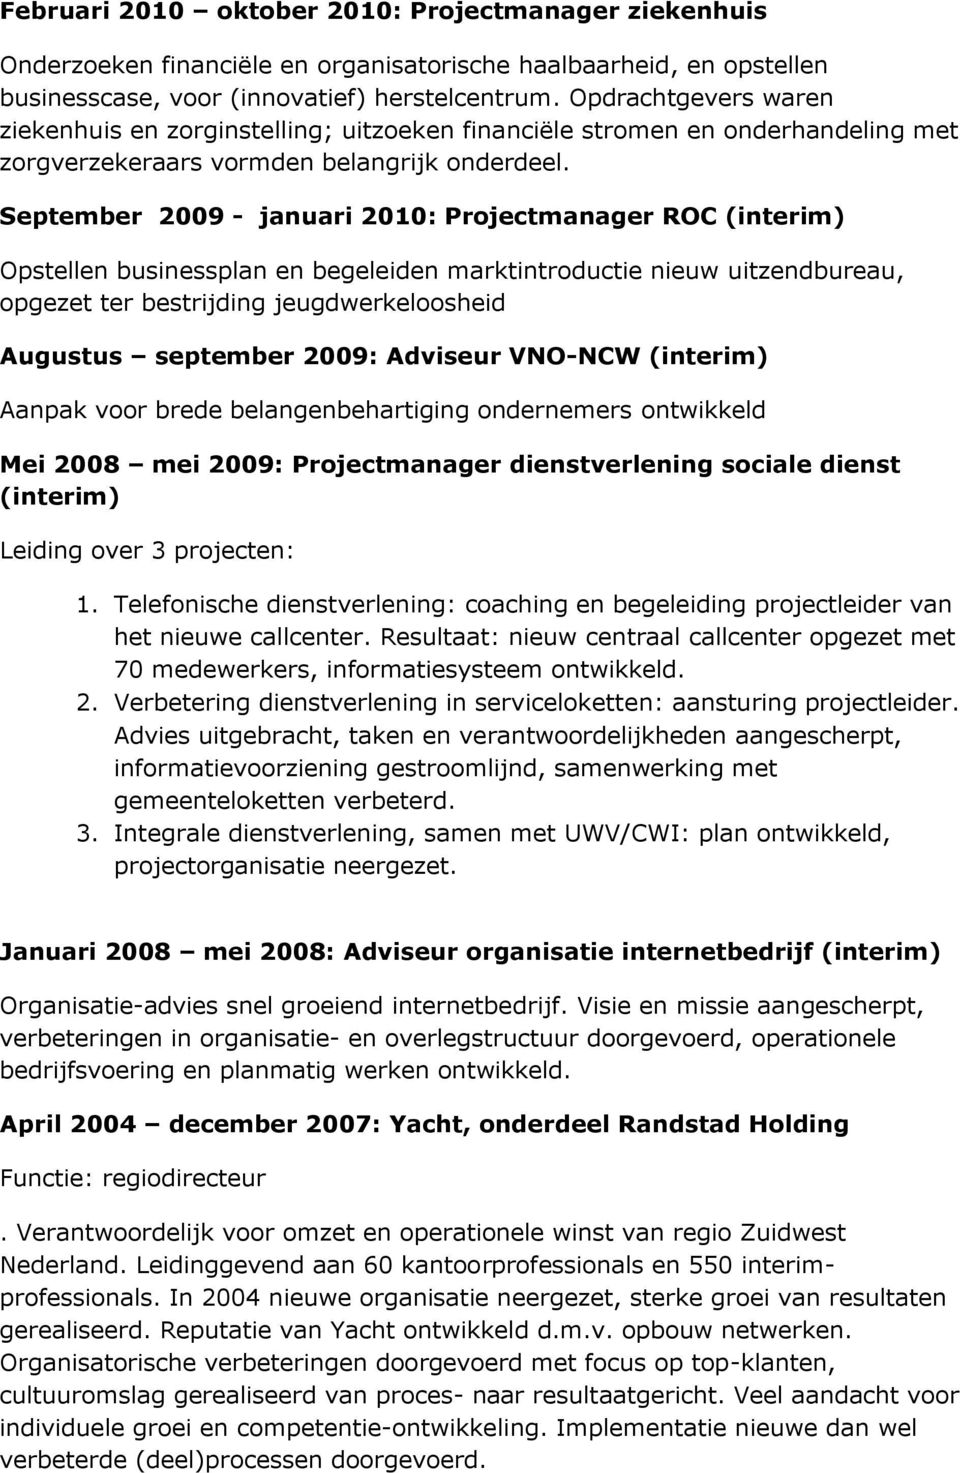 September 2009 - januari 2010: Projectmanager ROC (interim) Opstellen businessplan en begeleiden marktintroductie nieuw uitzendbureau, opgezet ter bestrijding jeugdwerkeloosheid Augustus september